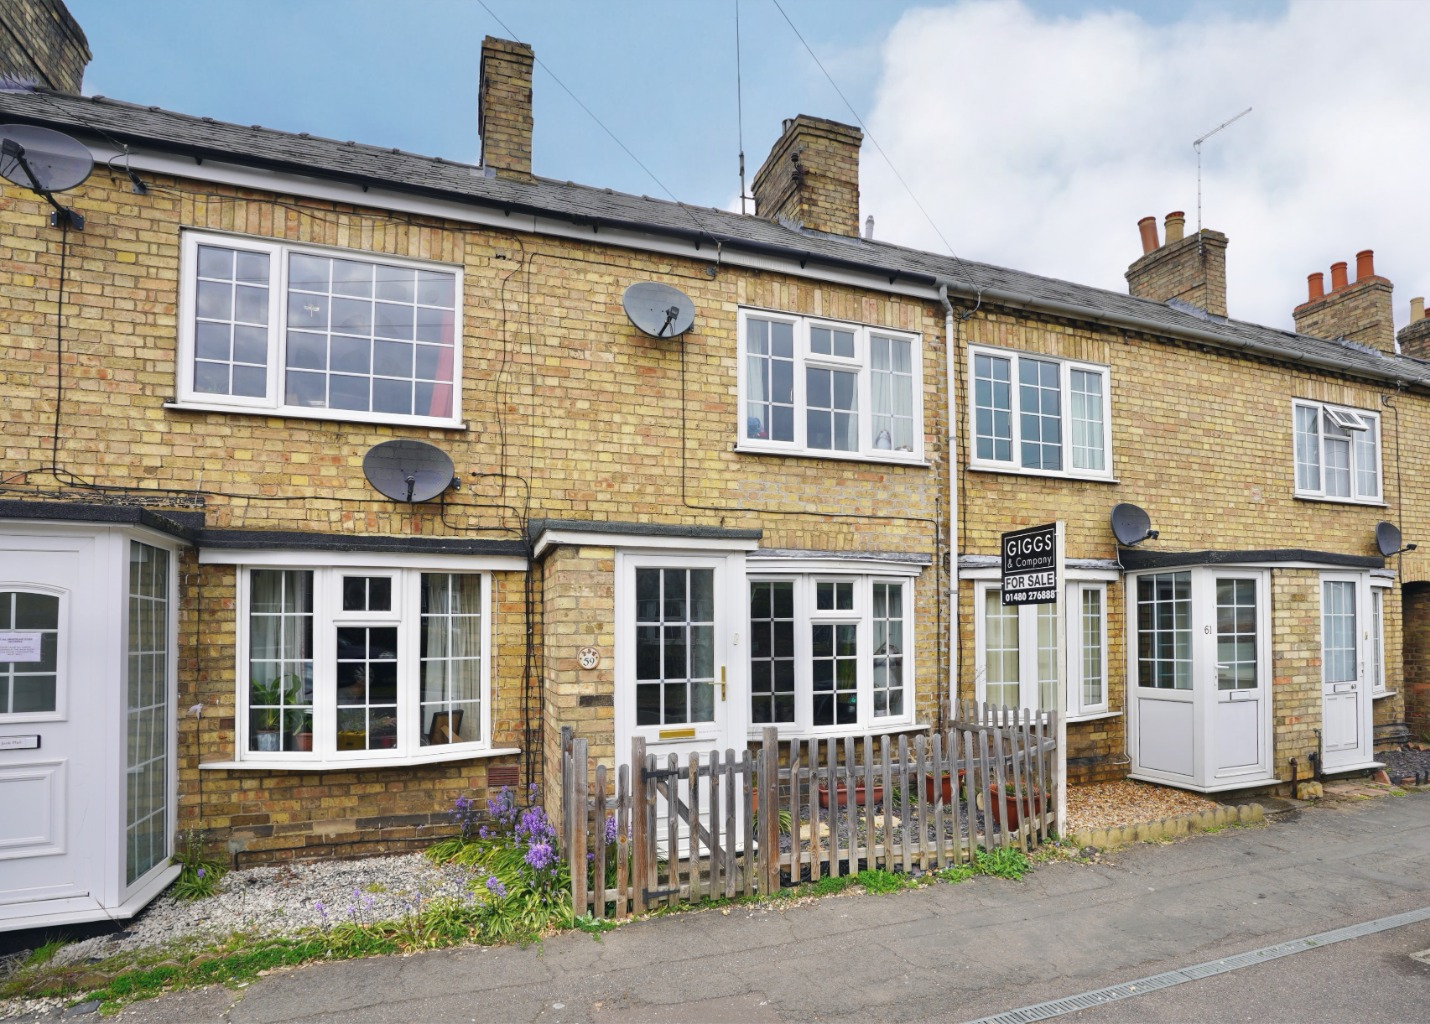 2 bed terraced house for sale in St. Neots Road, St. Neots - Property Image 1